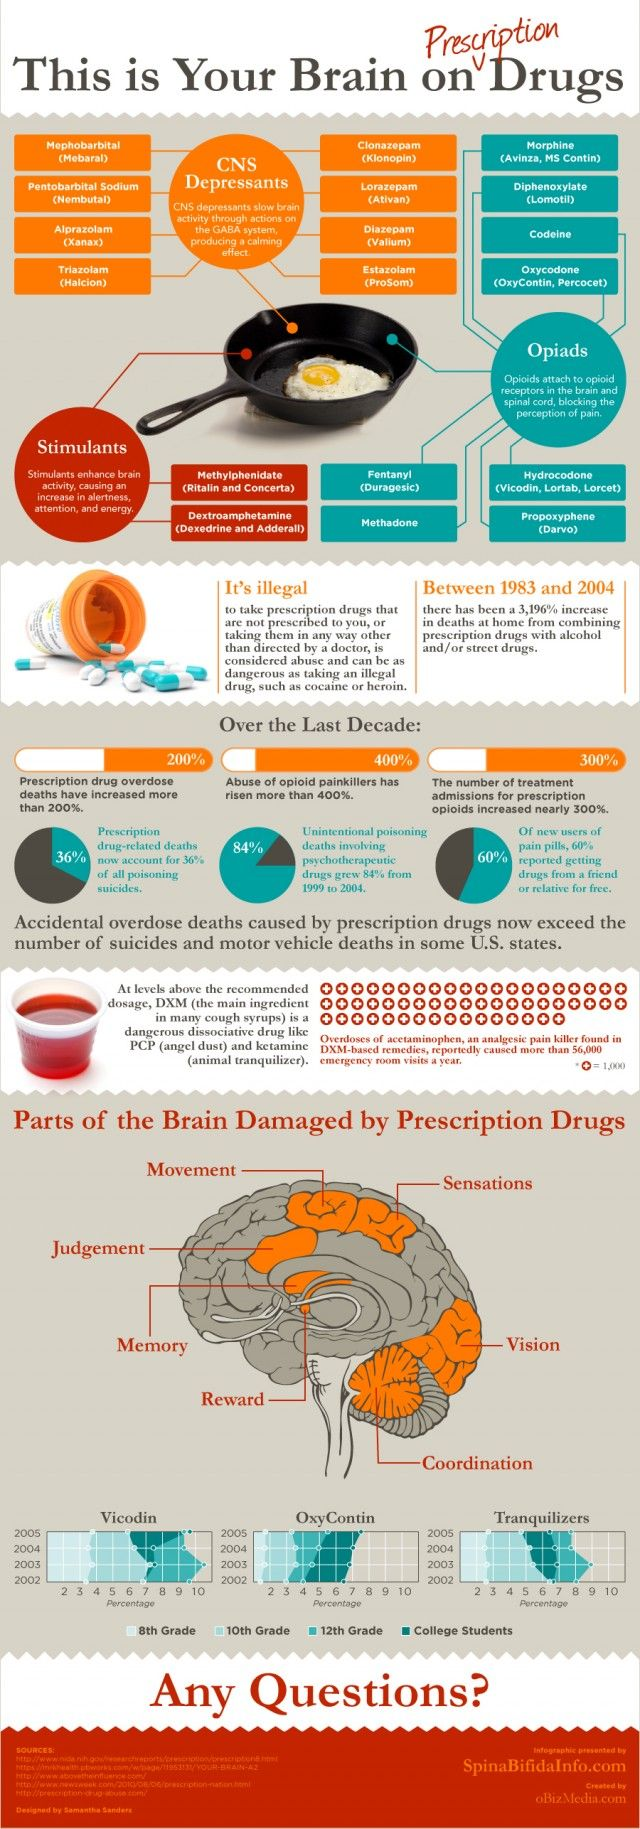 This is your brain on drugs.  Sadly this has effected people I know to the point of death.  Reading this helps me see the parts of their brain that were damaged.